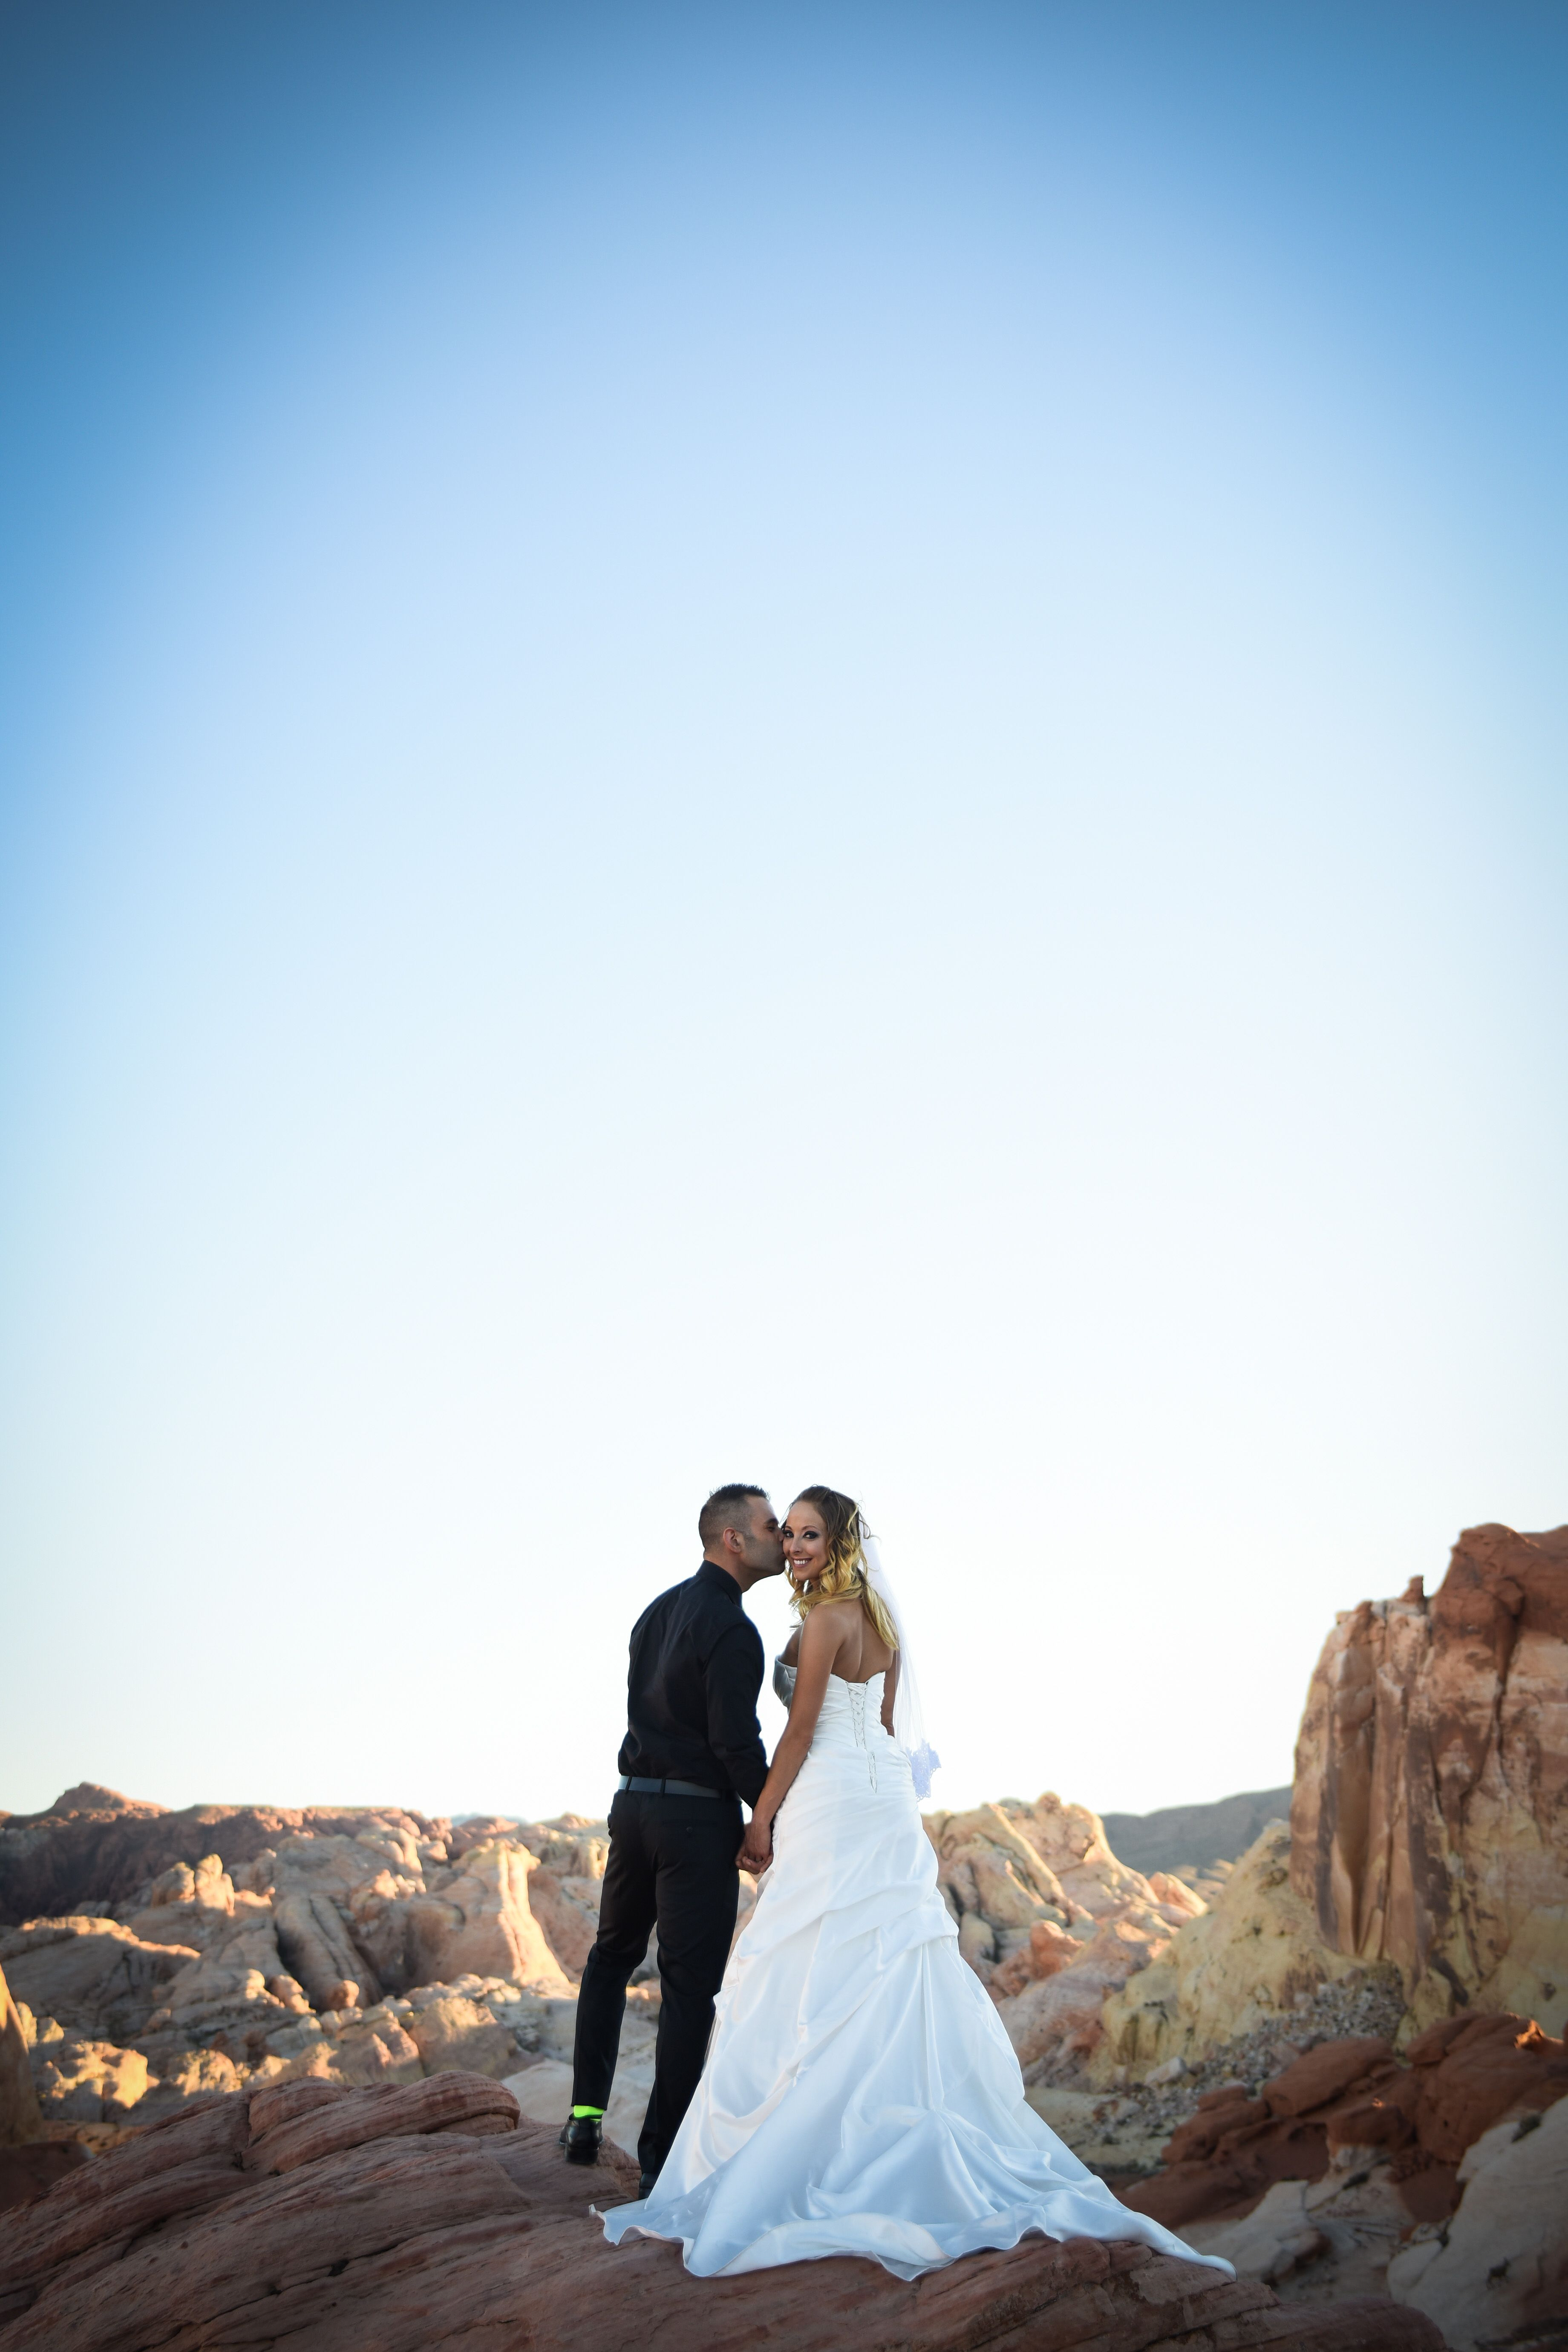 Elope In Las Vegas At The Valley Of Fire Beautiful Outdoor Wedding Ideas For Couple S Lo Las Vegas Weddings Las Vegas Wedding Chapel Beautiful Outdoor Wedding